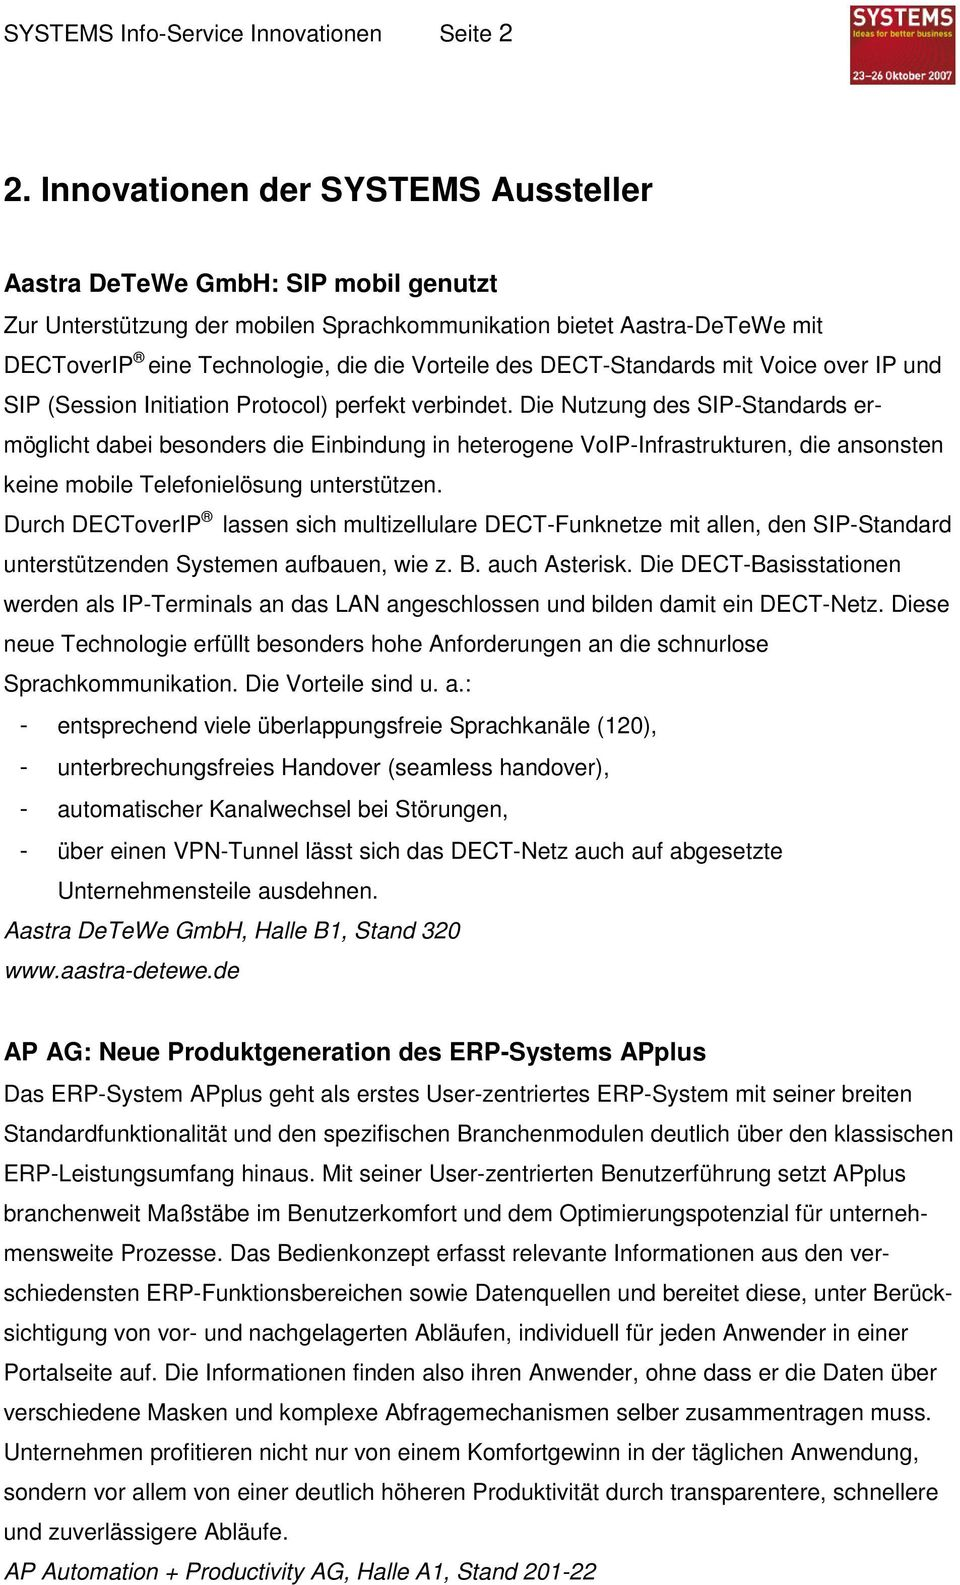 DECT-Standards mit Voice over IP und SIP (Session Initiation Protocol) perfekt verbindet.